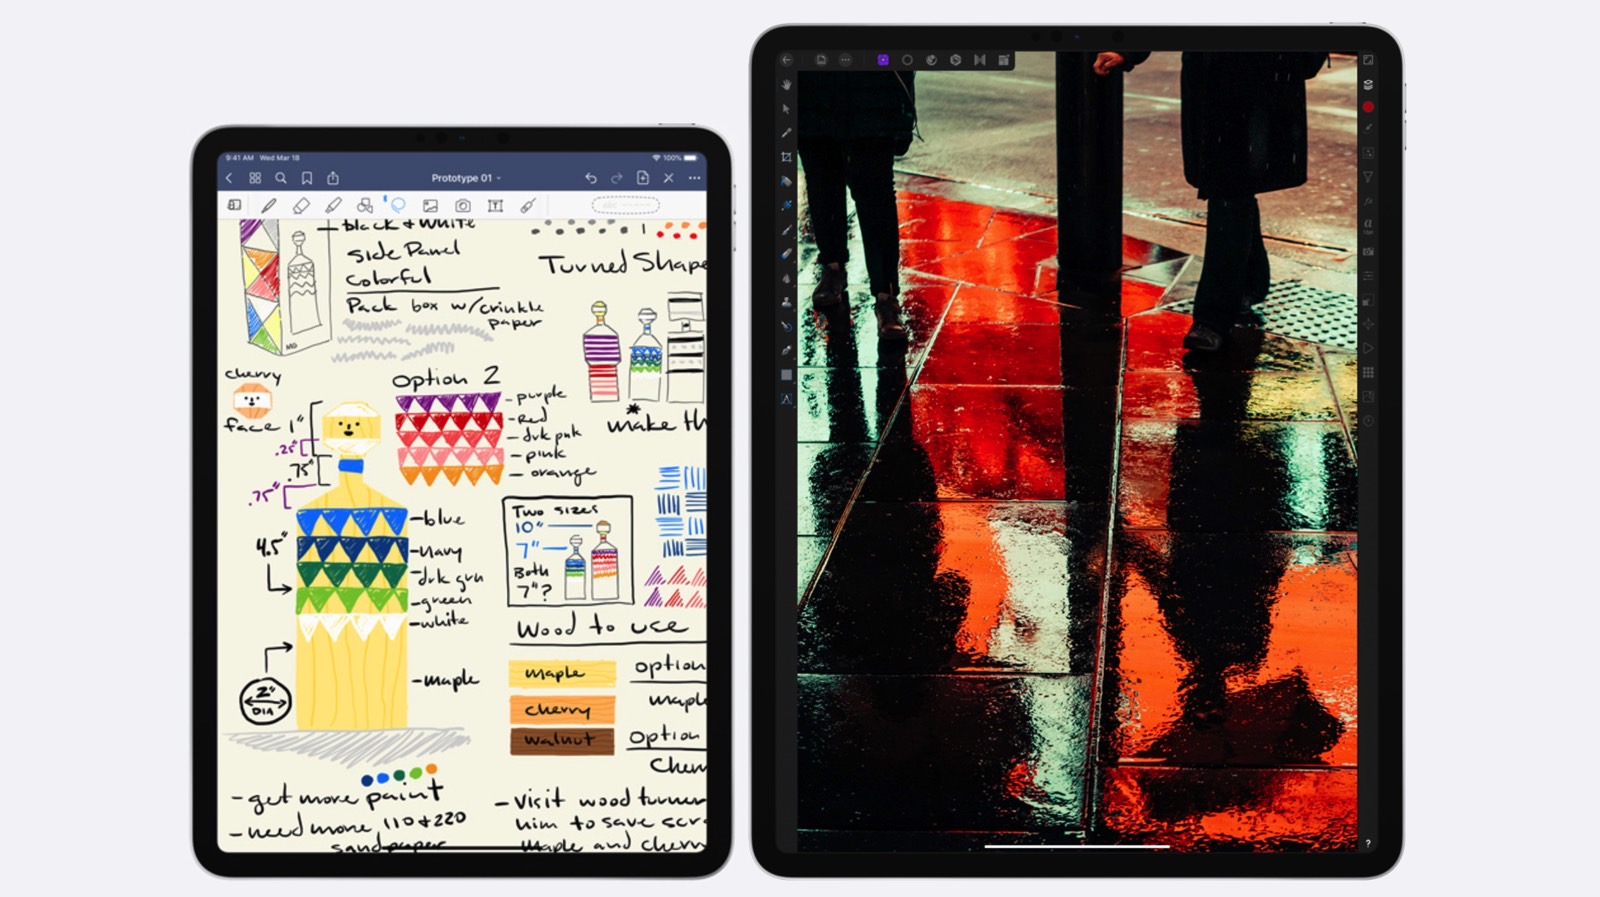 The most exciting new iPad pro might be hard to find at launch